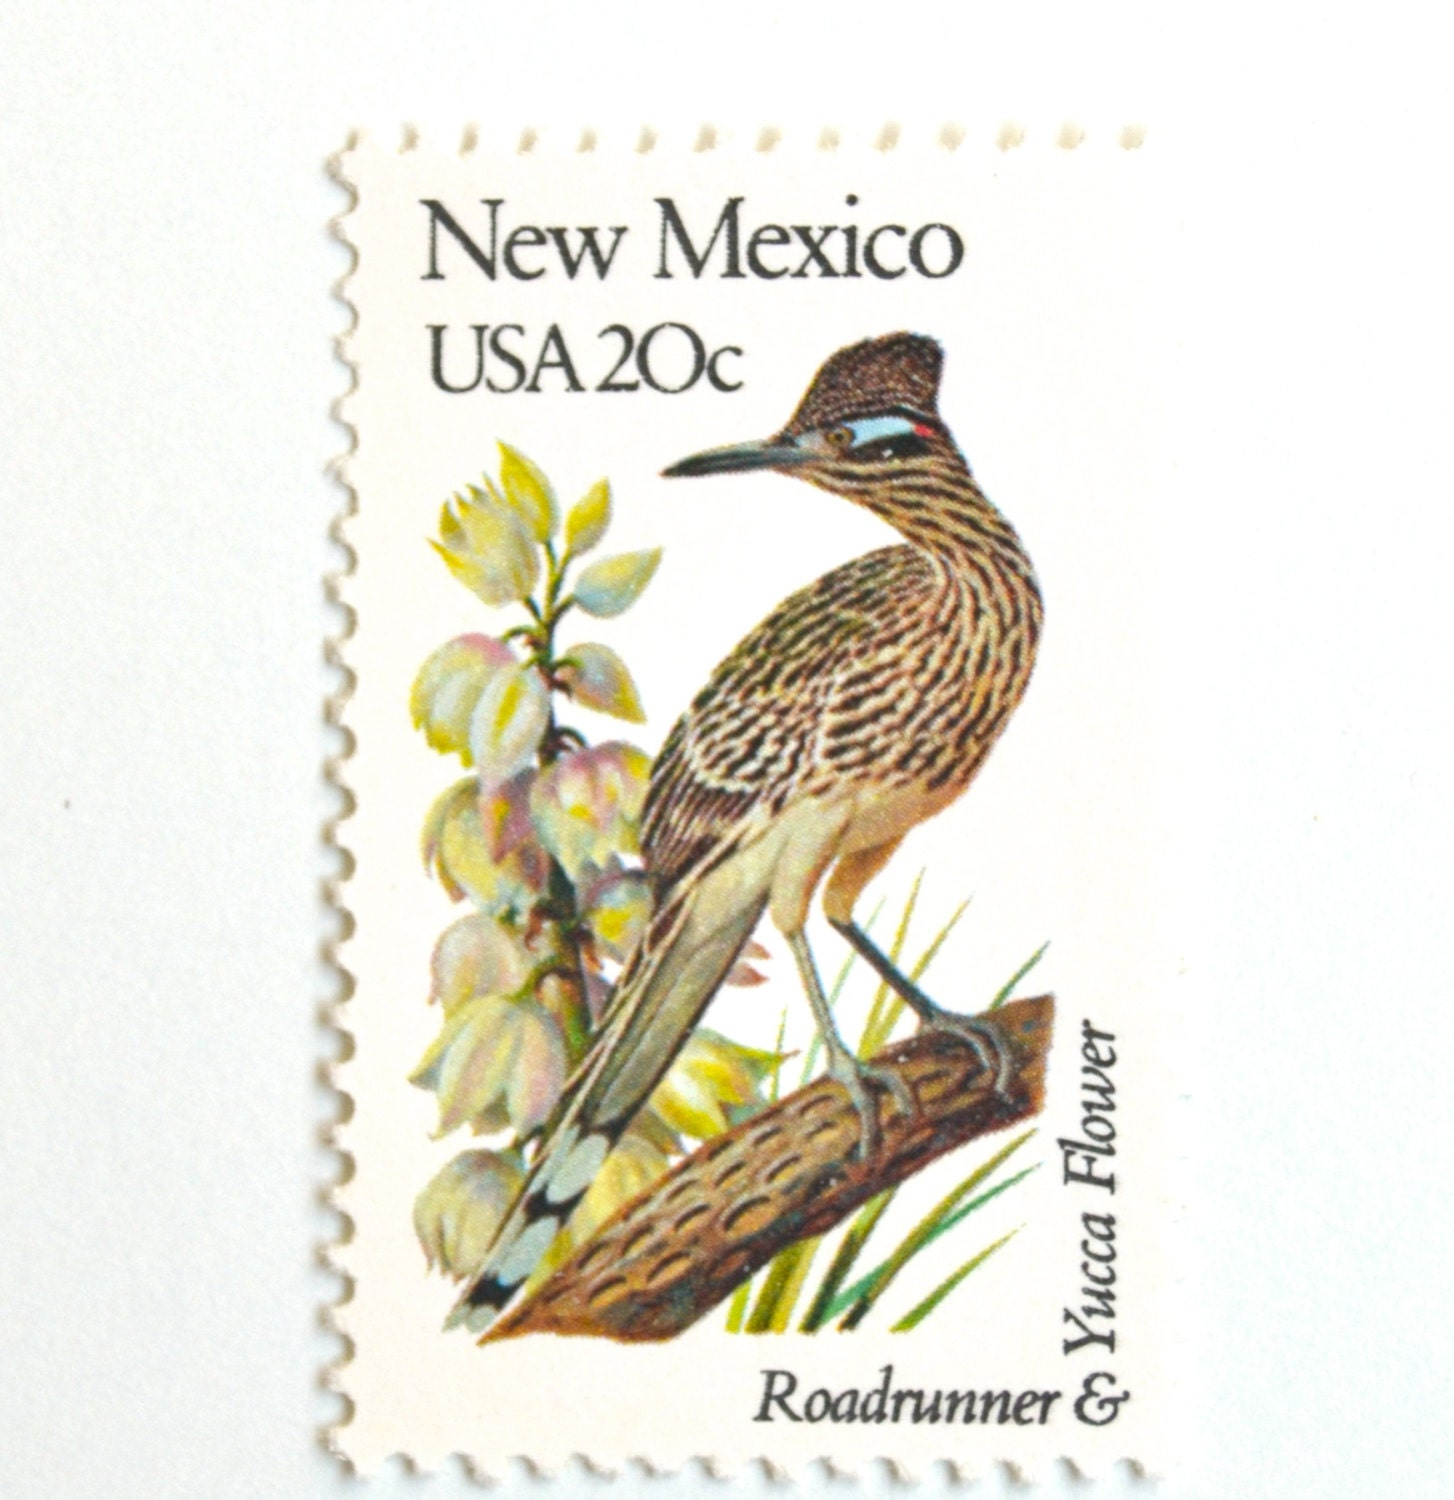 10 Unused New Mexico Vintage Postage Stamps Roadrunner